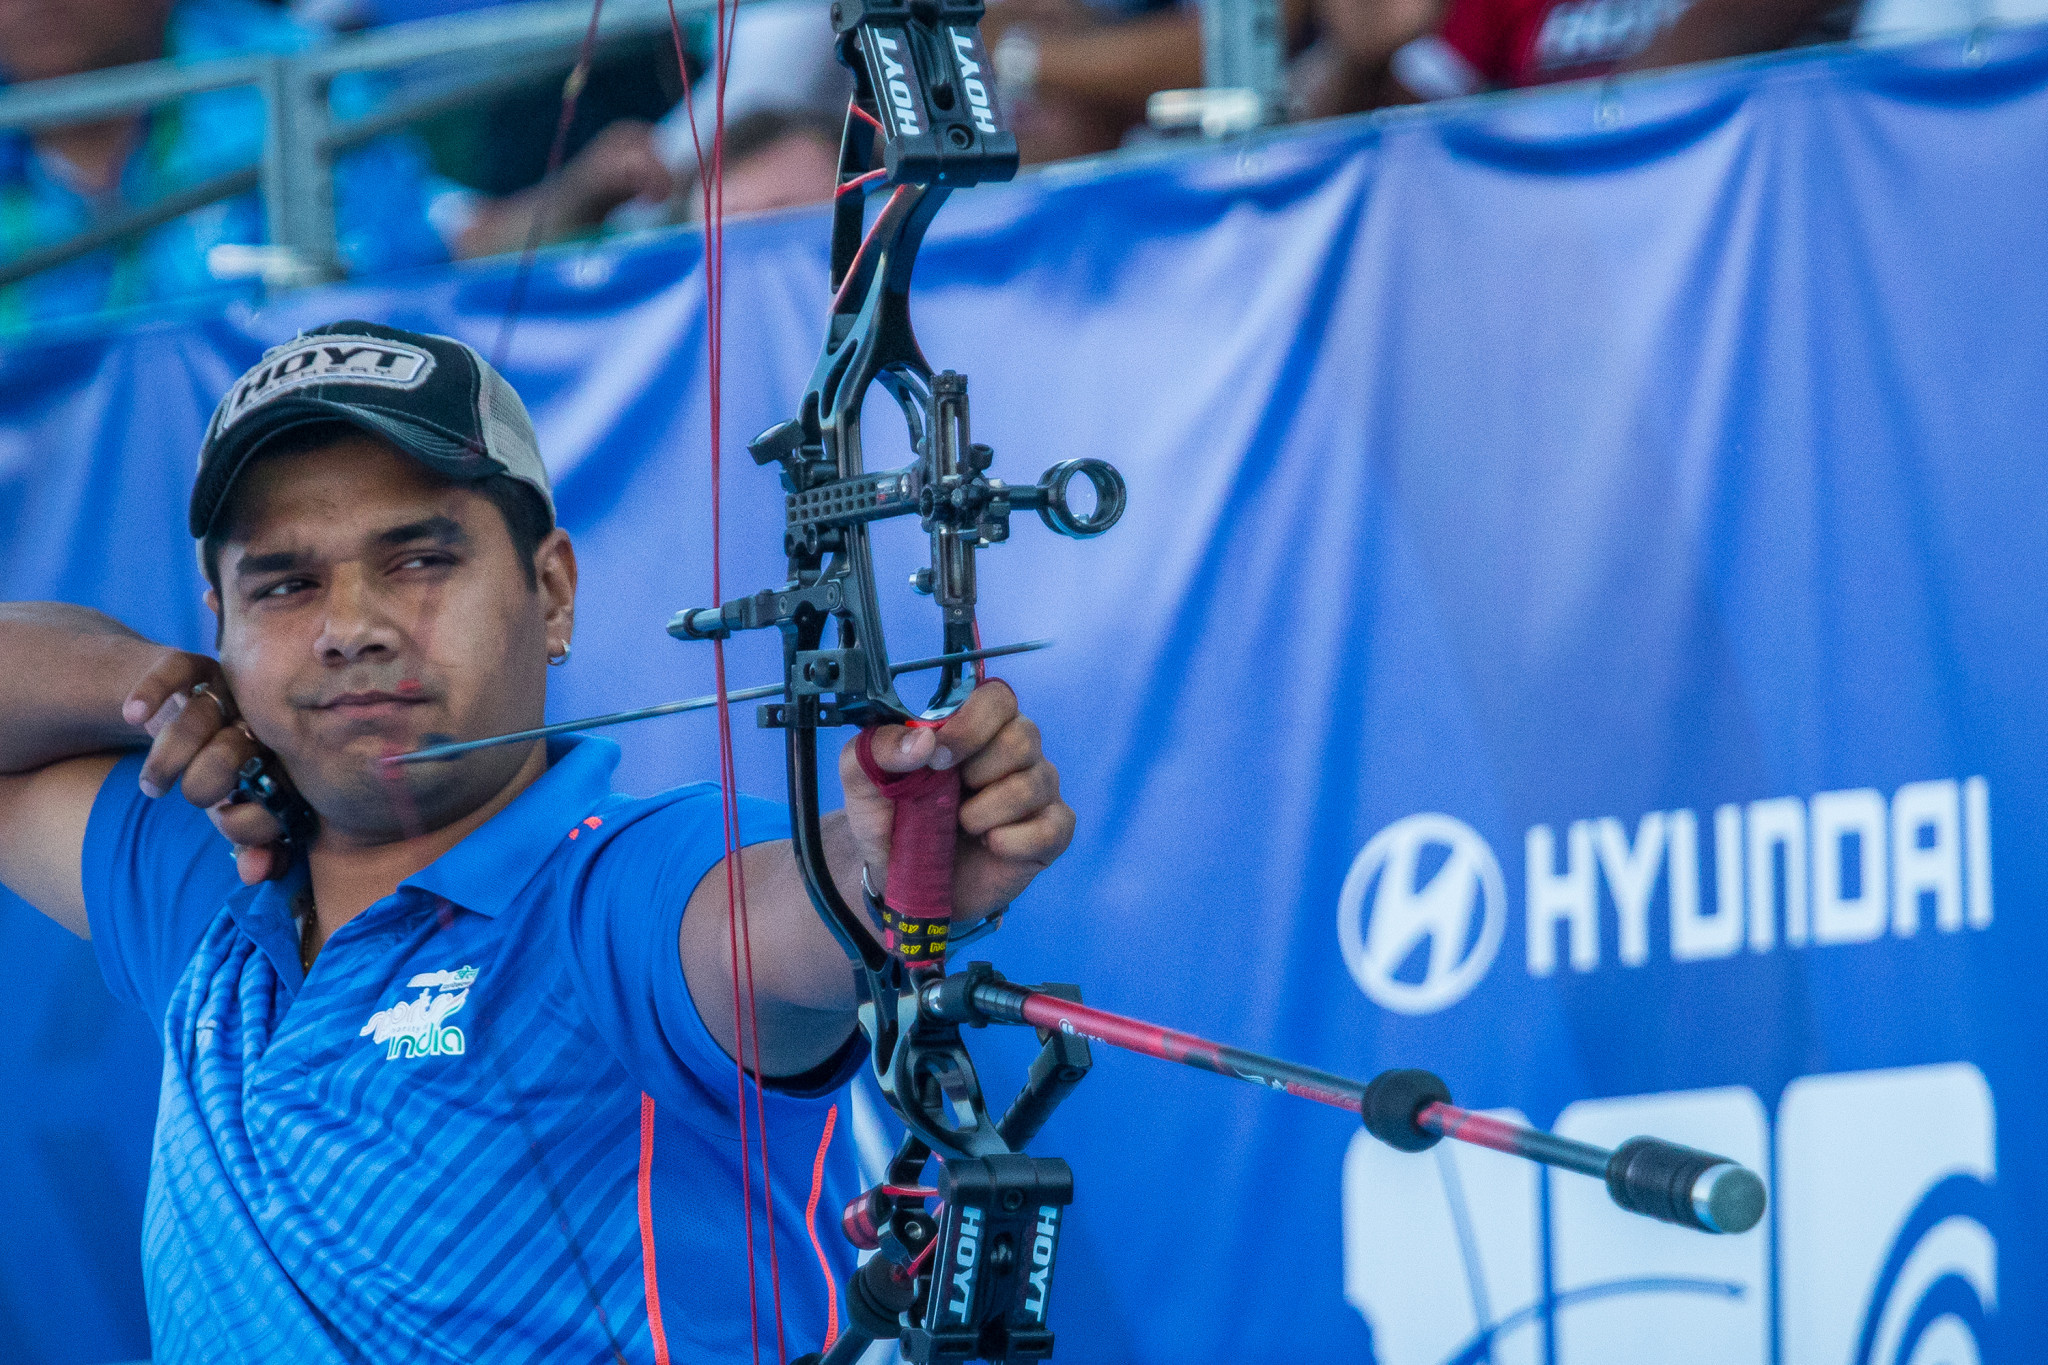 Verma and Lopez win compound gold medals at Paris Archery World Cup